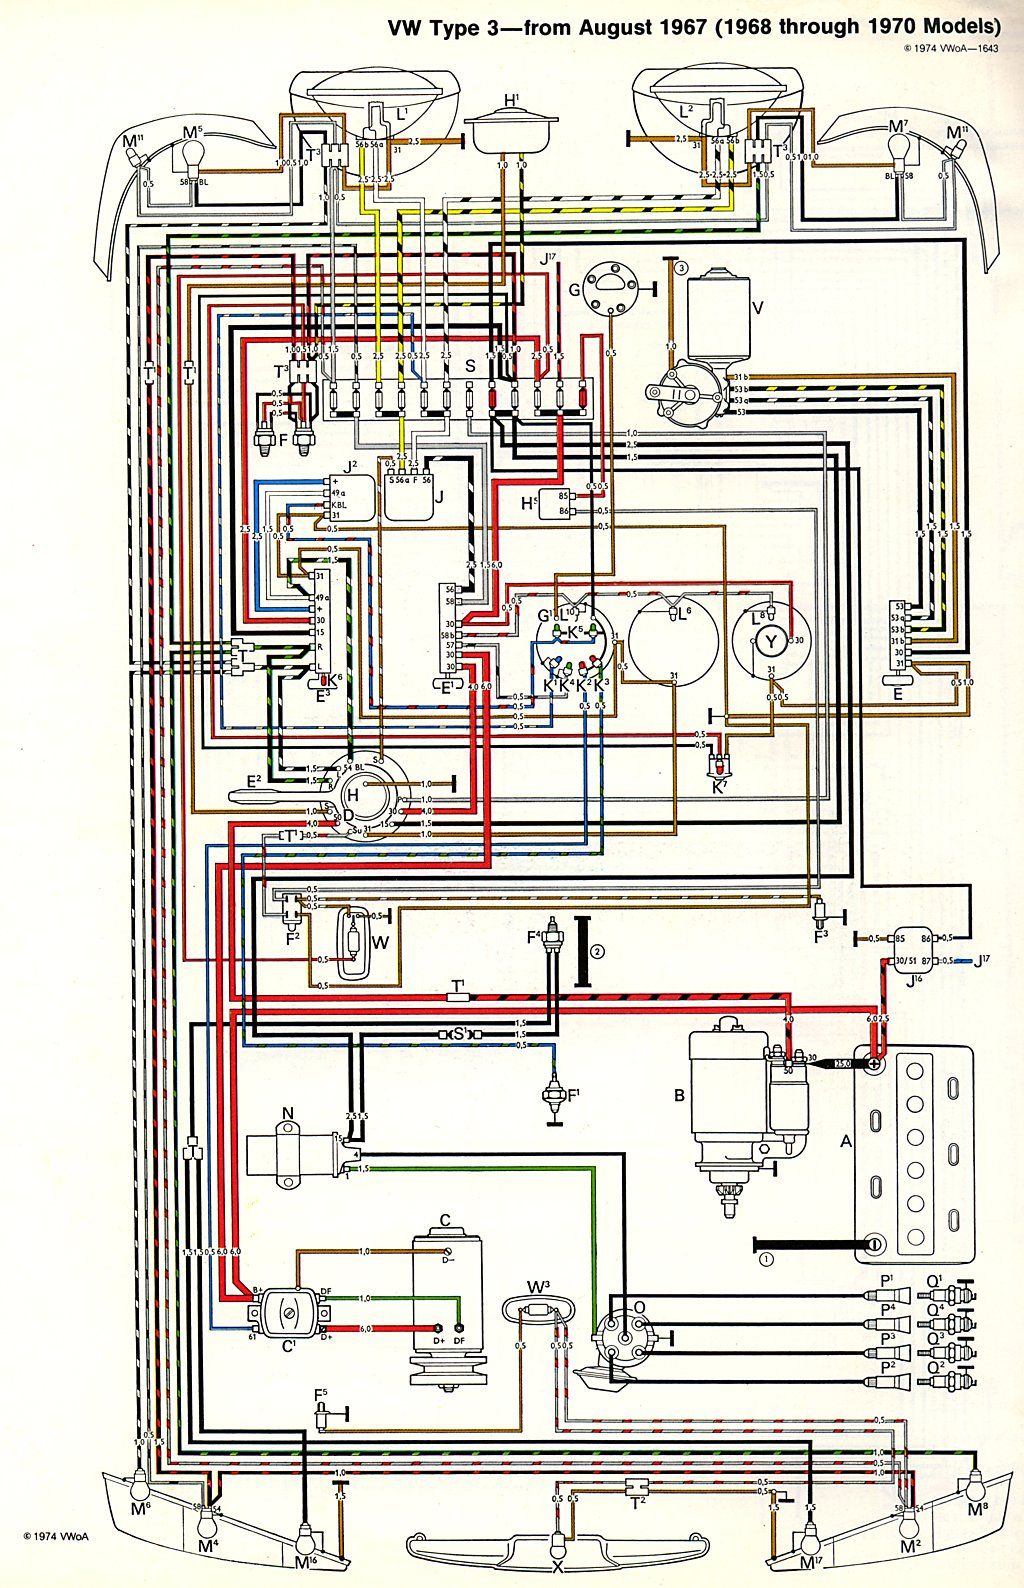 70 vw wiring diagram 70 duster wiring diagram